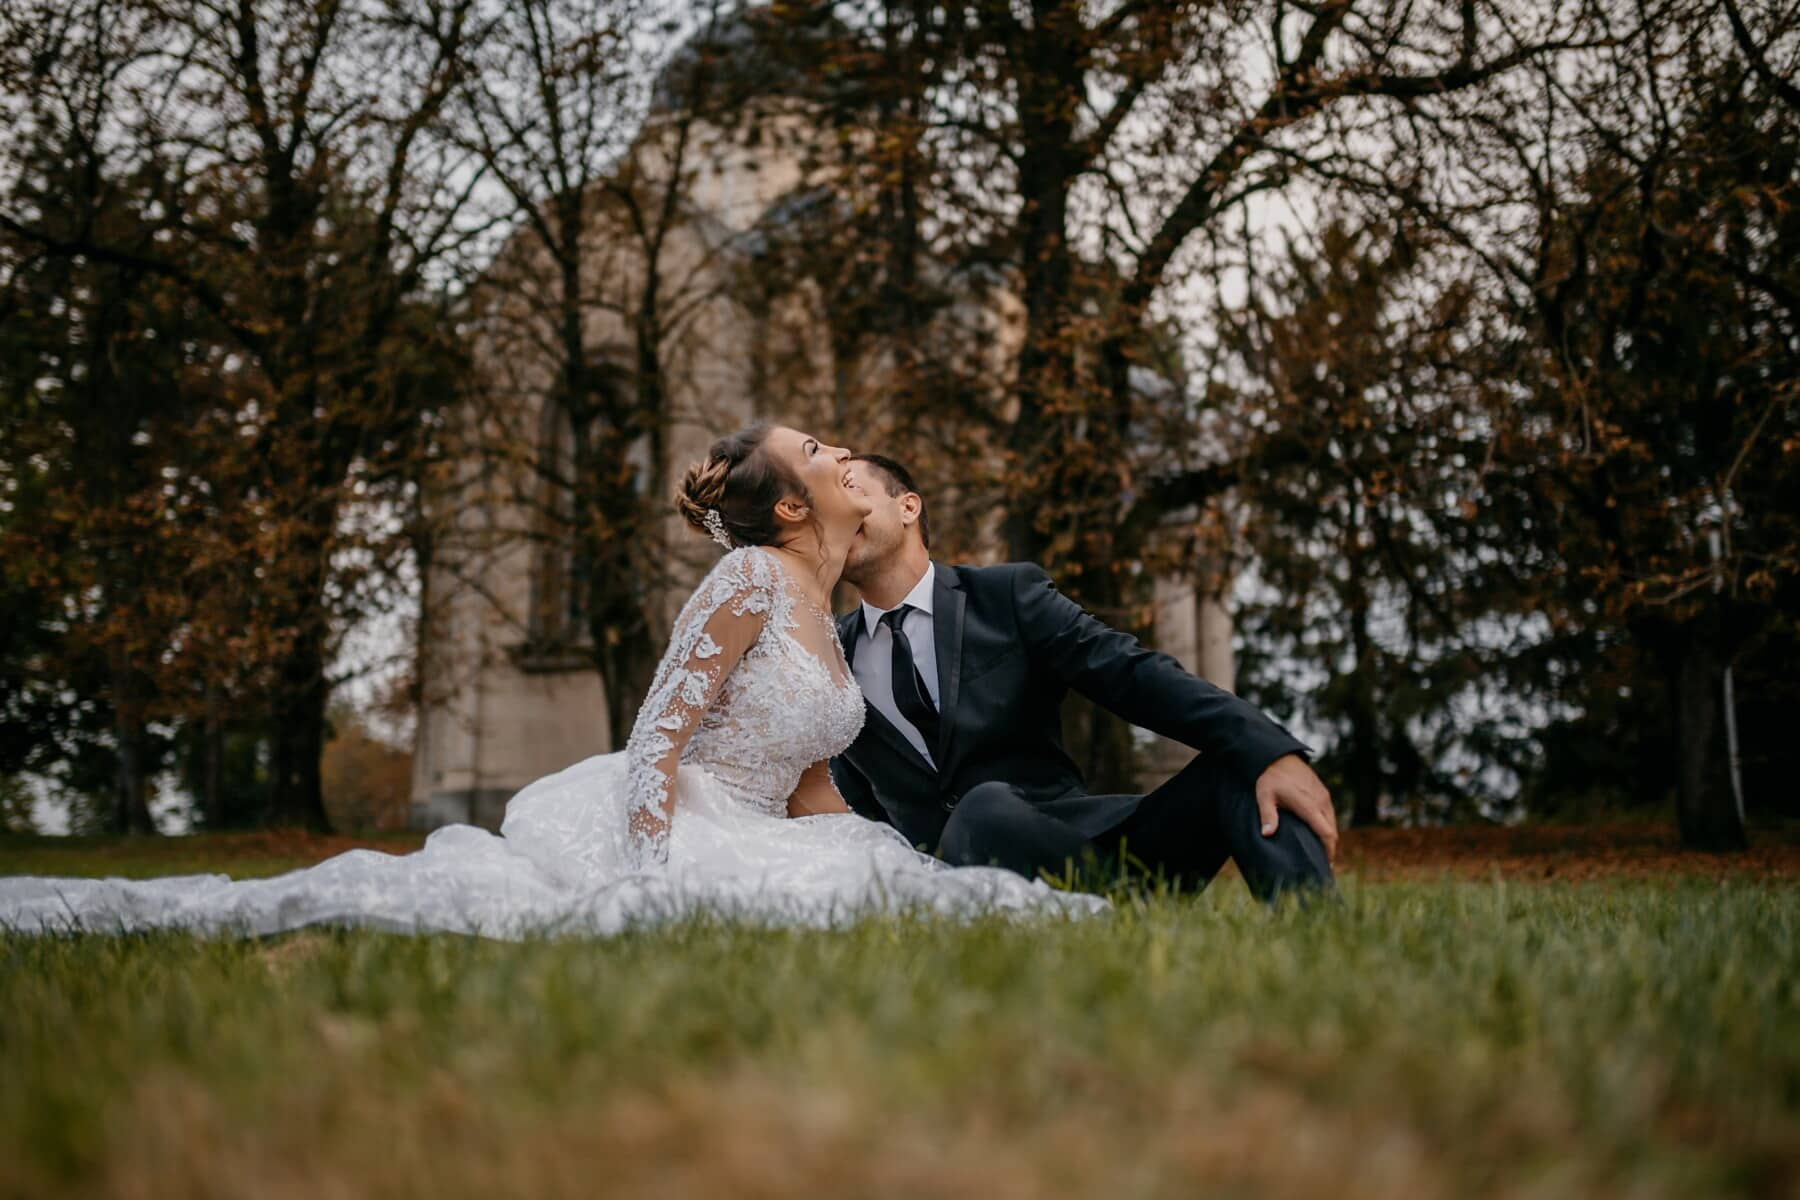 happiness, enjoyment, smile, just married, lawn, picnic, sitting, love, groom, wedding